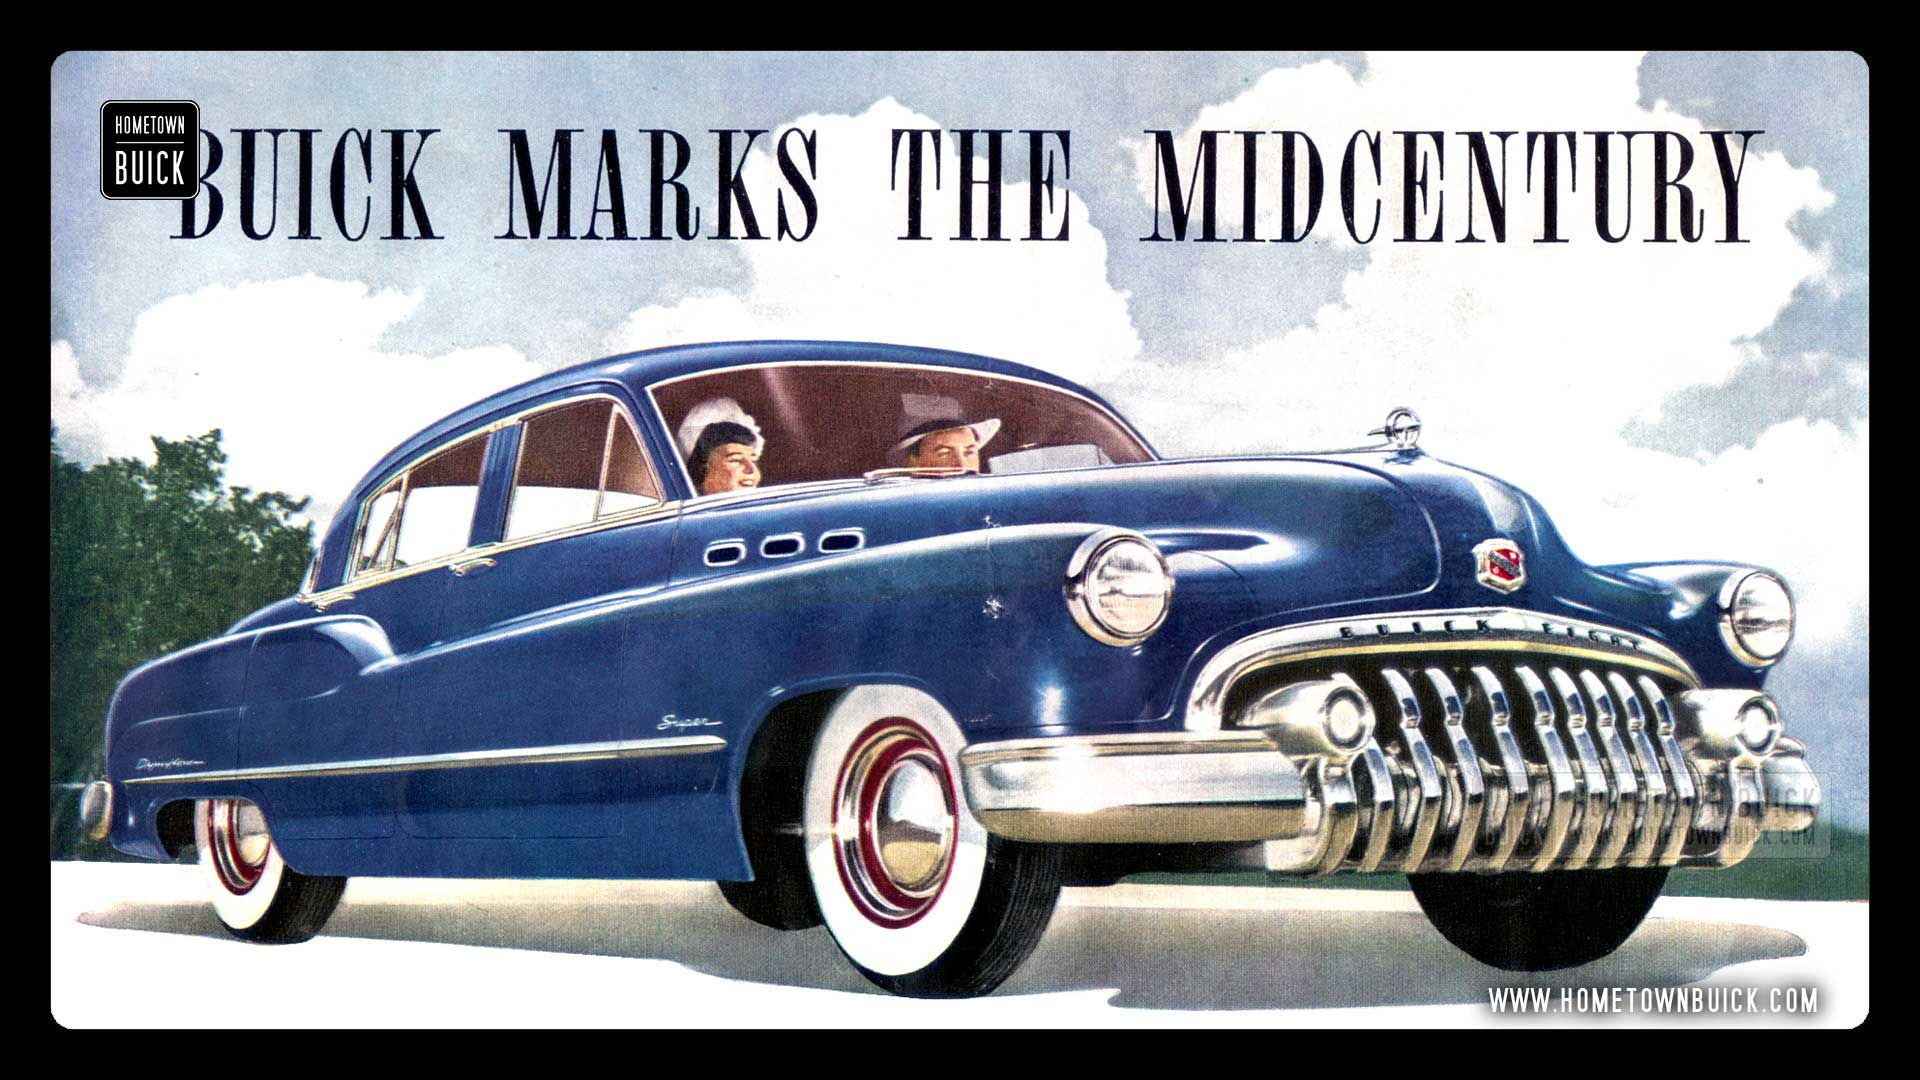 Buick Wallpaper - Hometown Buick